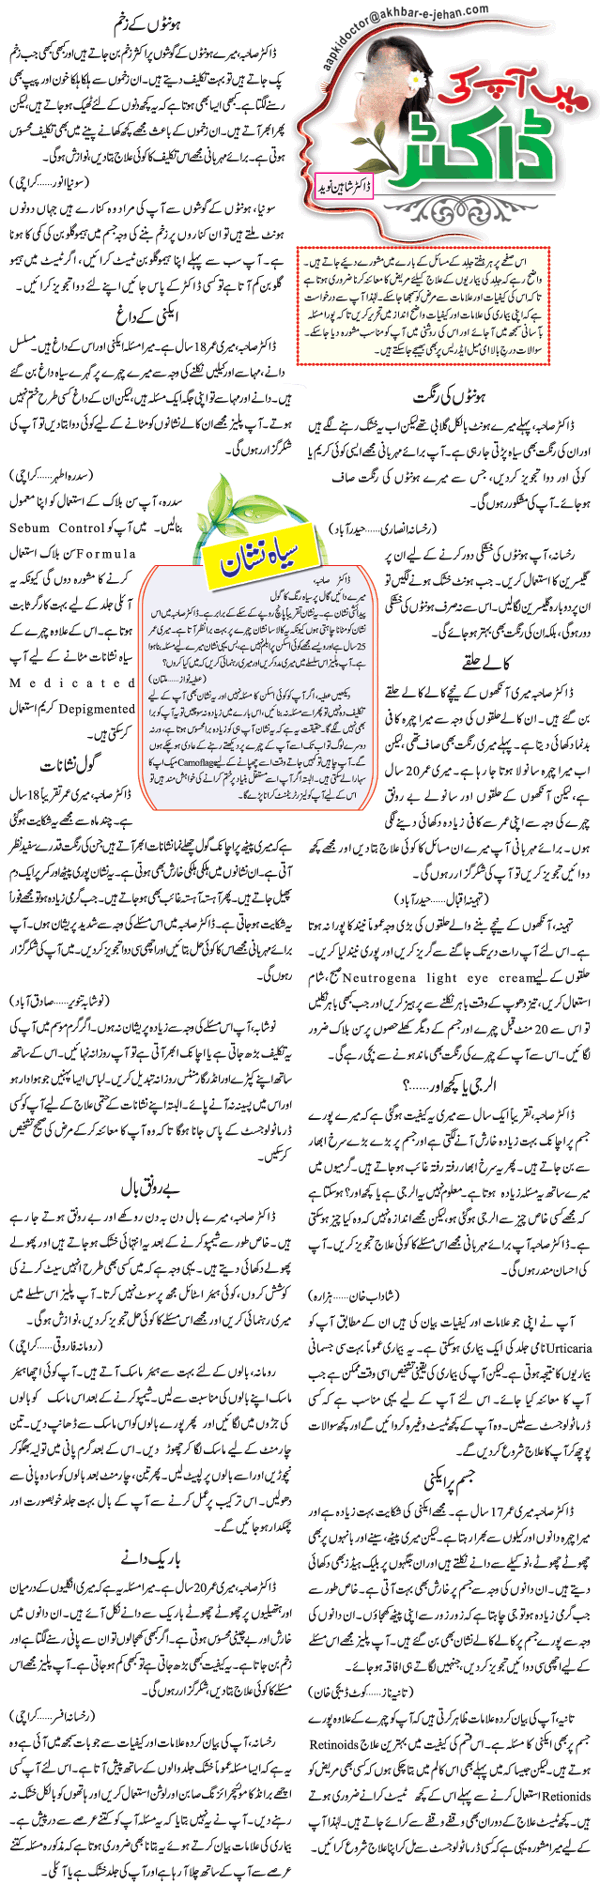 Aap ki Doctor Weekly Akhbar e Jehan Urdu Tips Totkay Acne Pimples Dark Cricle Hair Face Skin Pikn Lips by Dr Shaheen Naveed November 2014